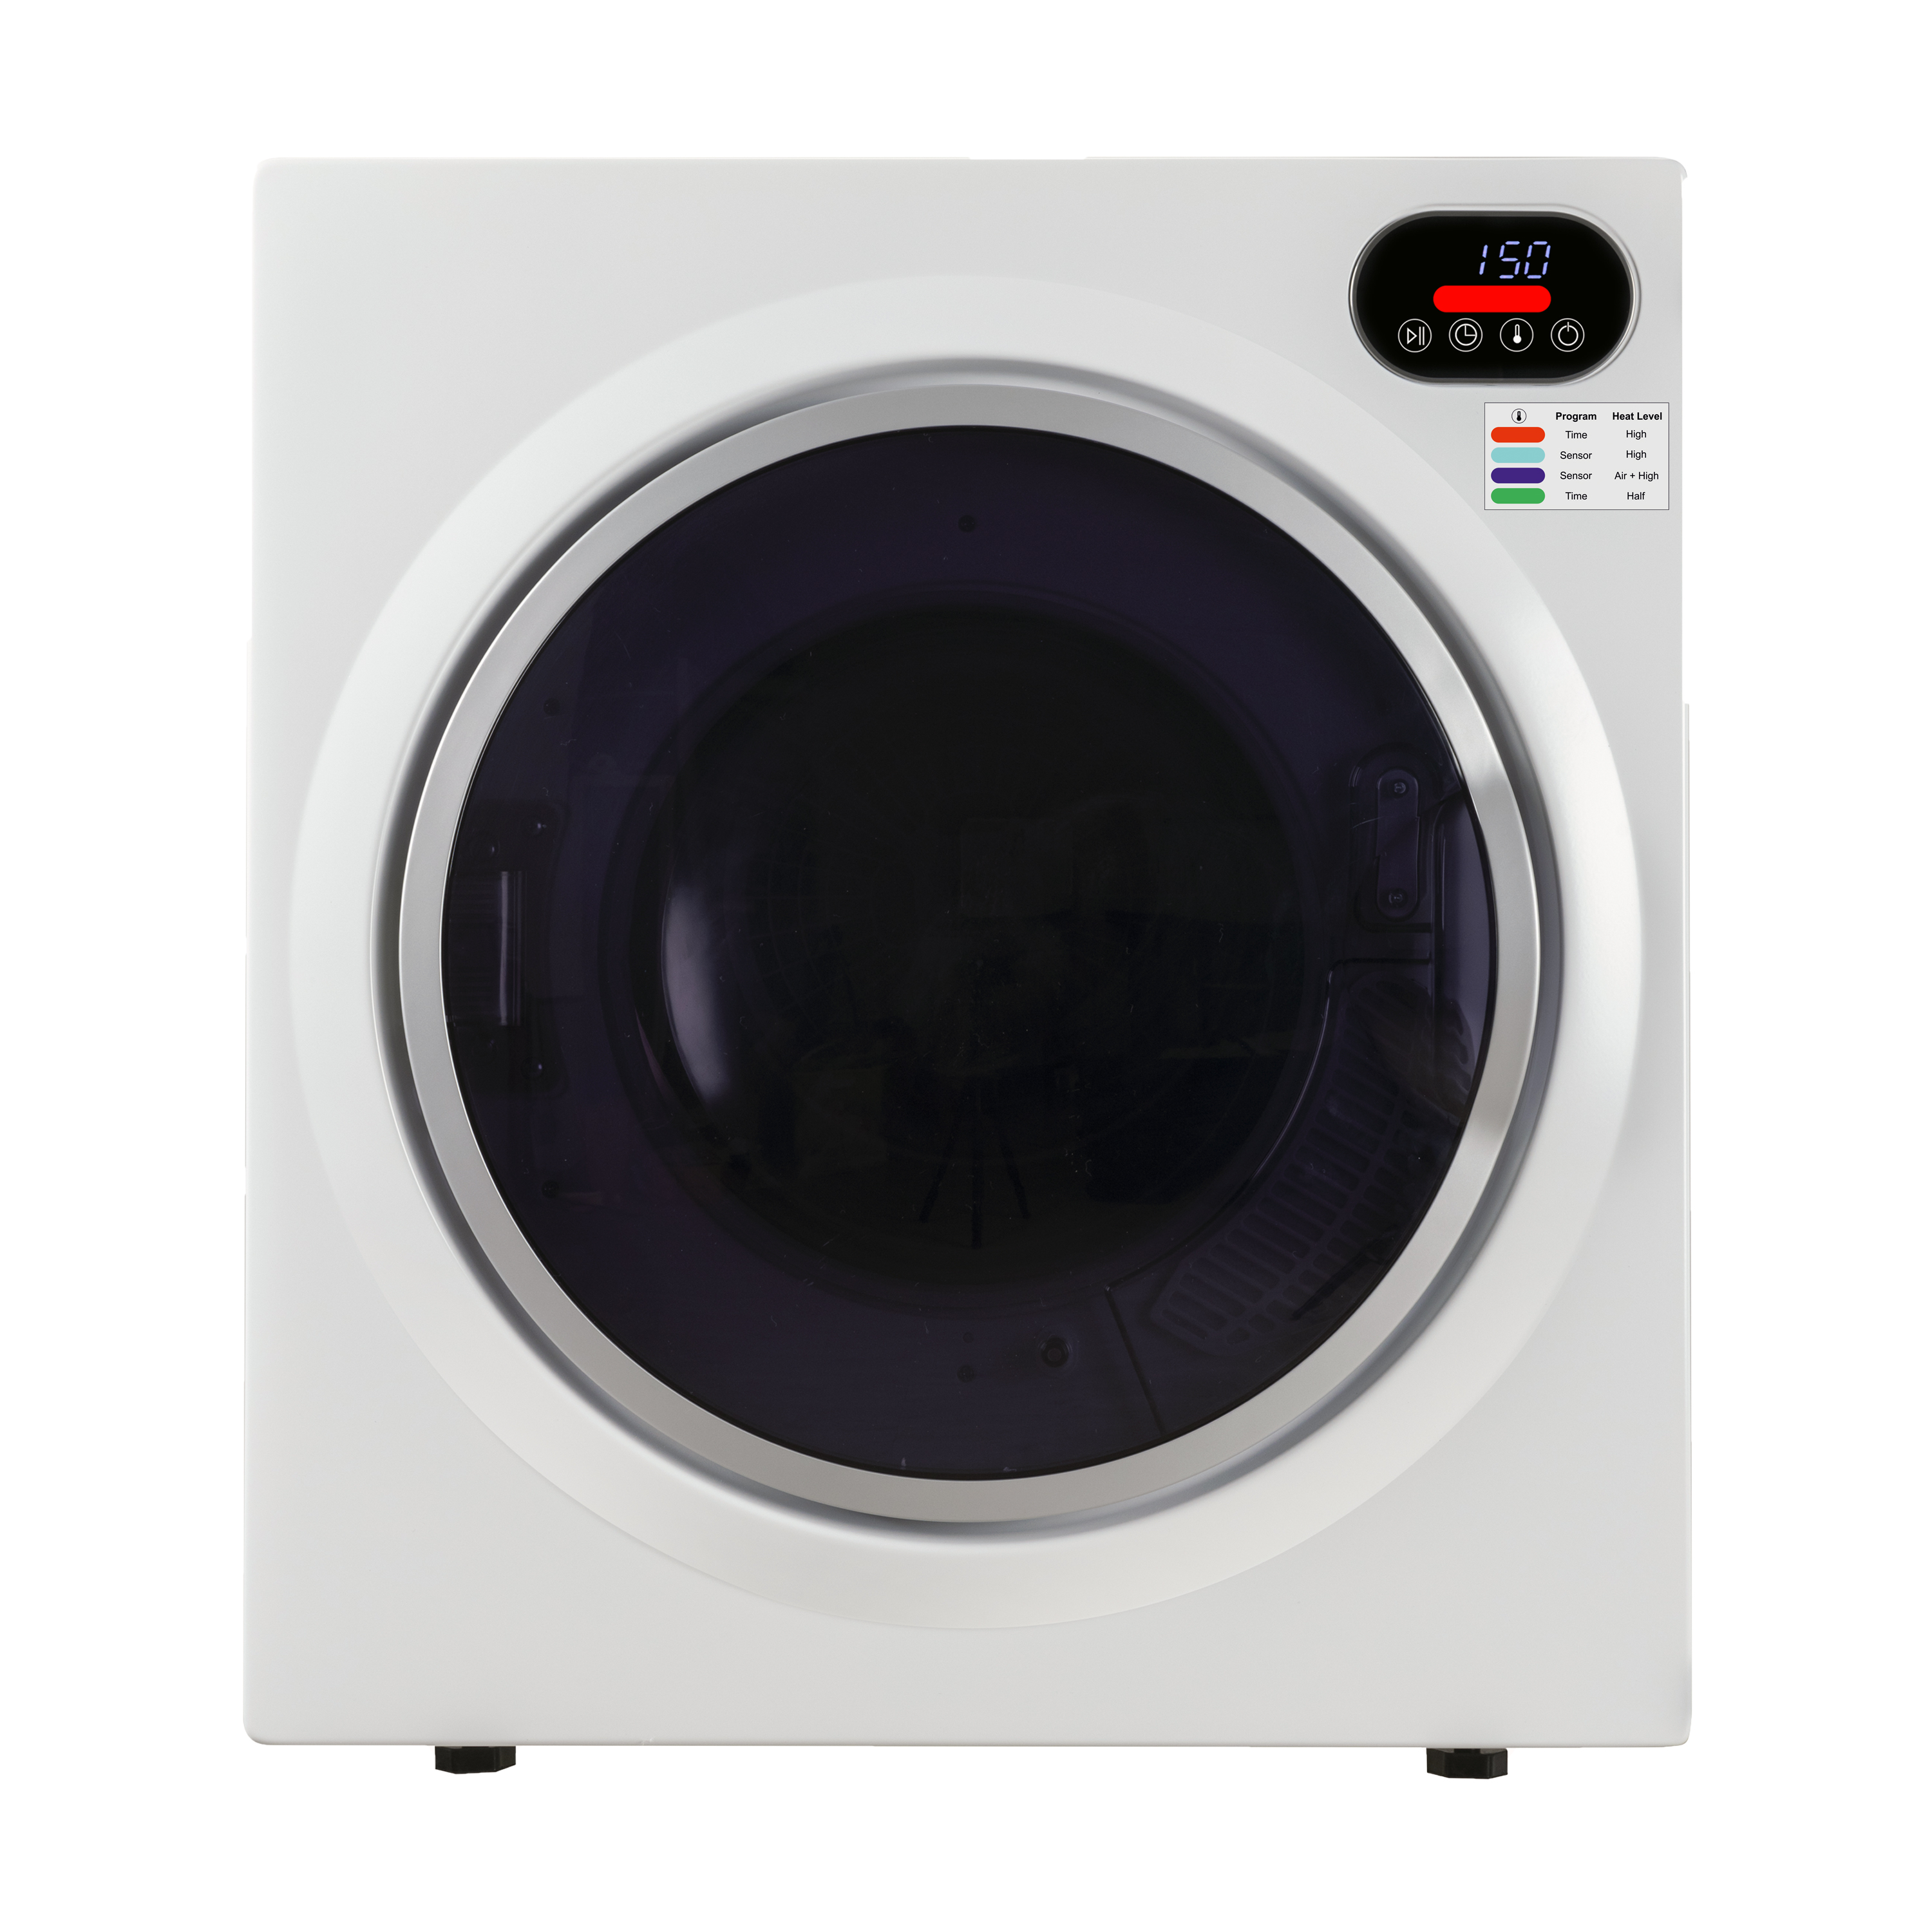 2.6 cu.ft. Compact Digital Dryer in White